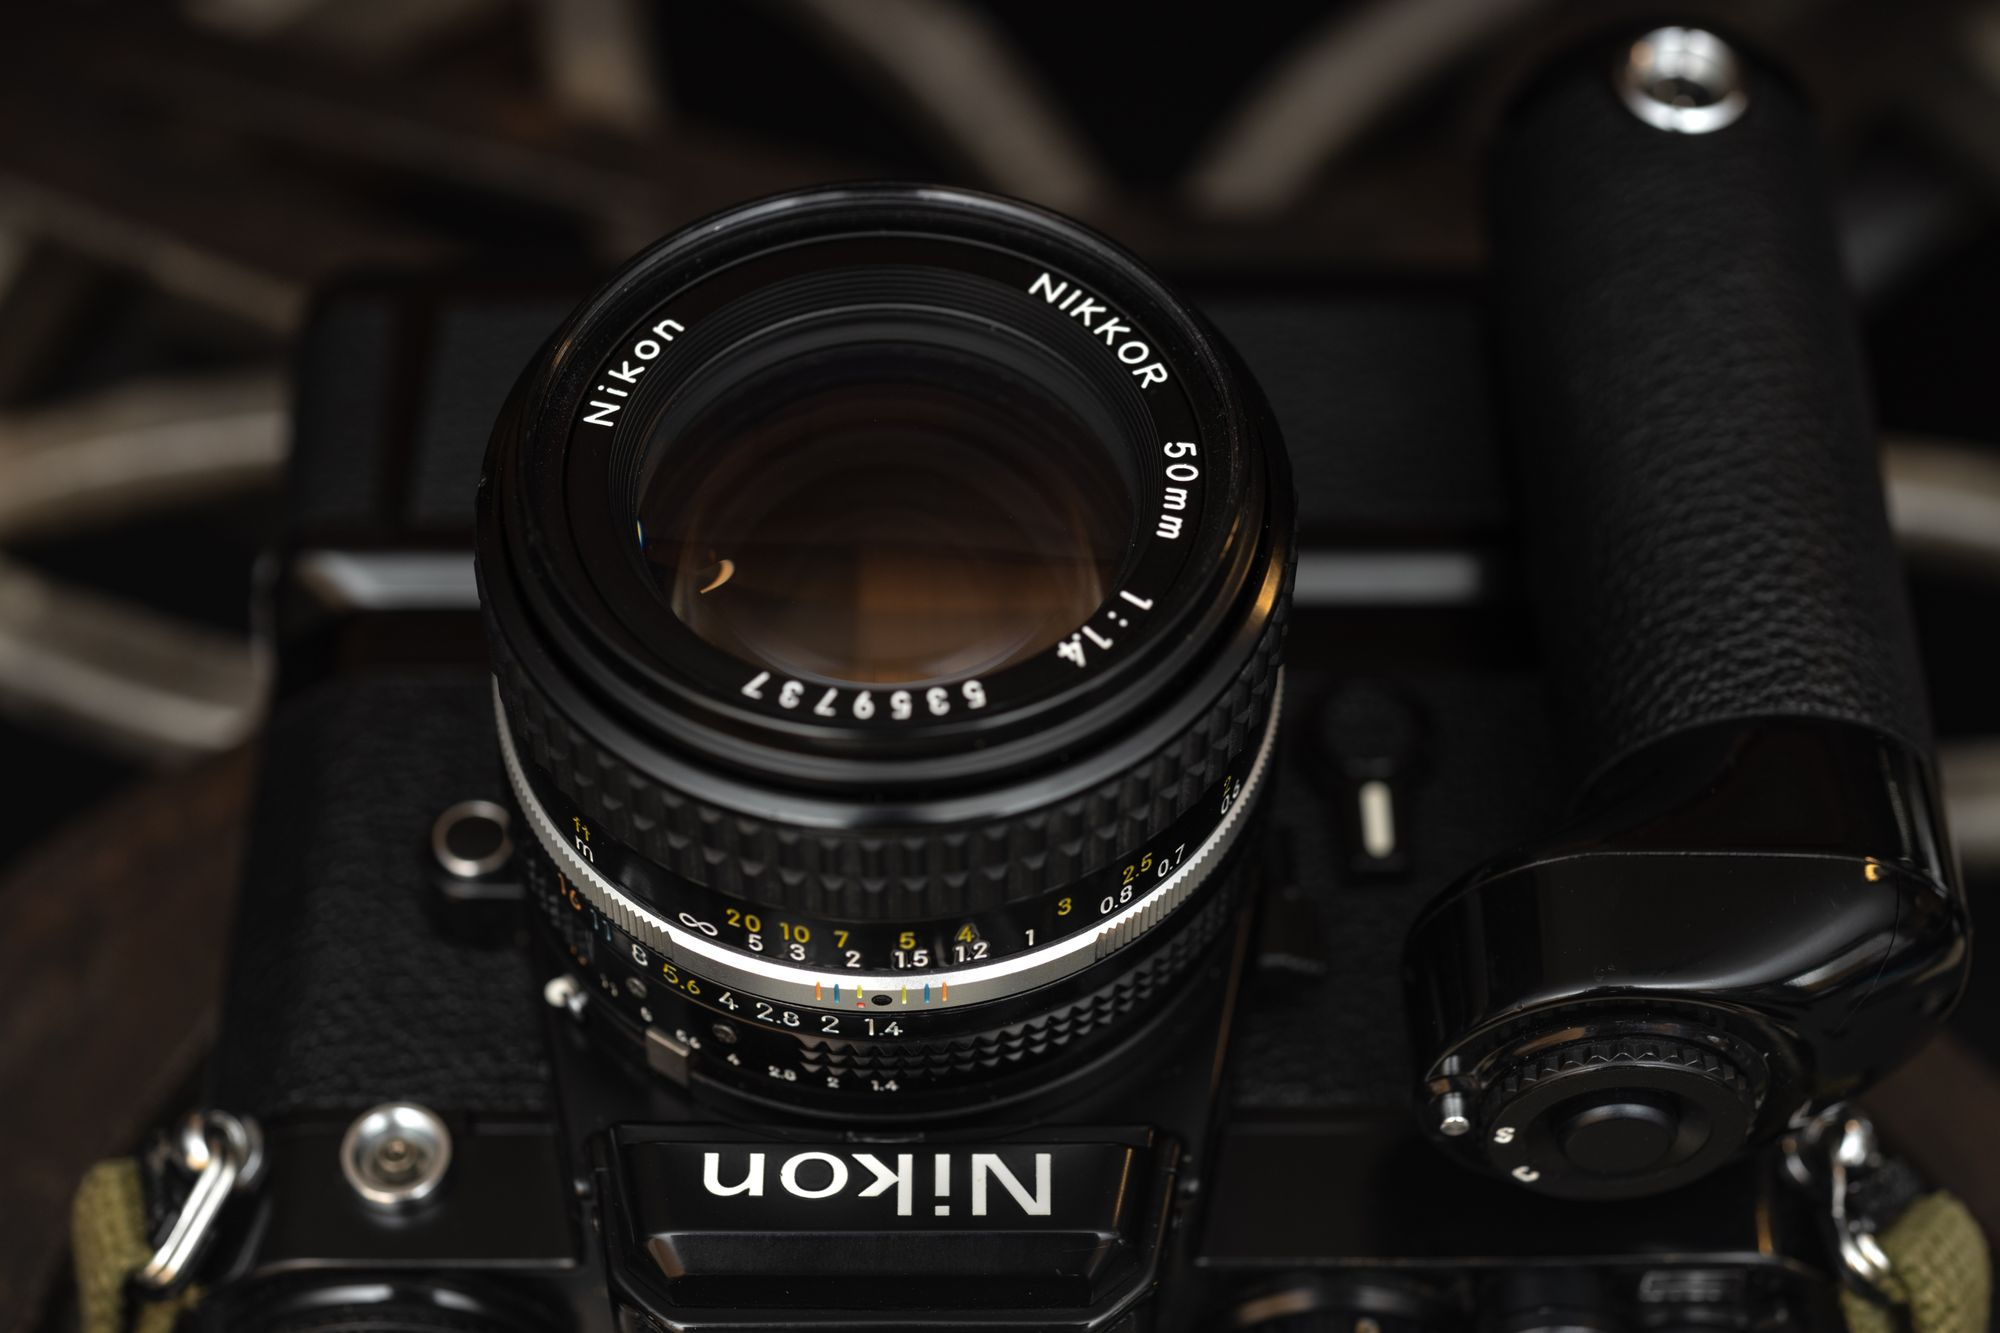 Back to the Basics: My Experiences With the Nikkor 50mm F/1.4 AI-s